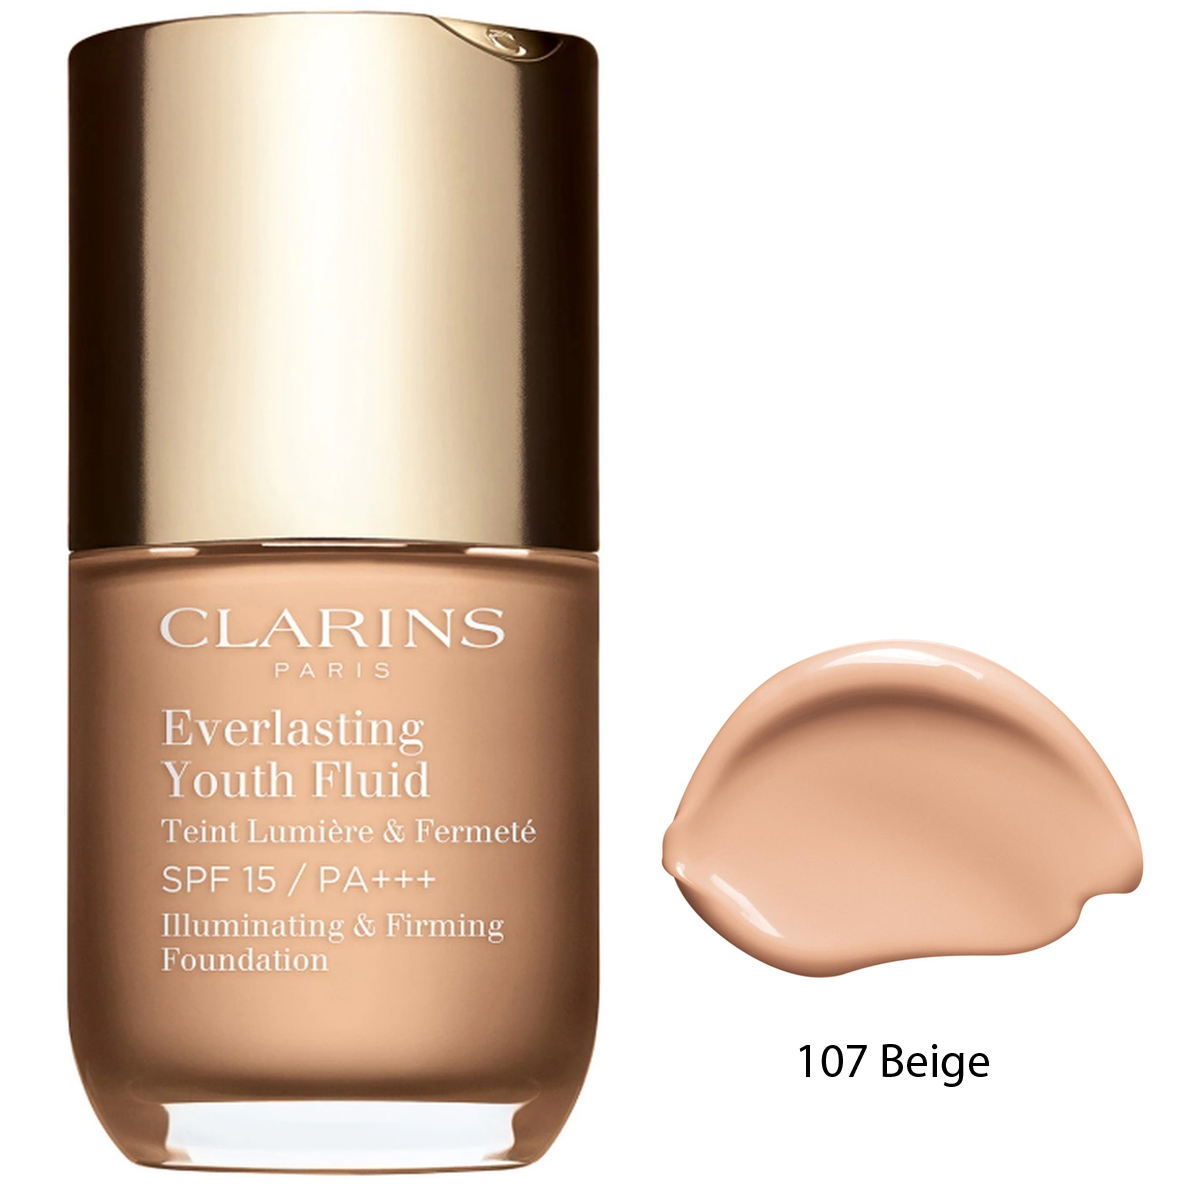 Clarins Everlasting Youth Fluid Fondöten SPF15 30 ml 107 Beige